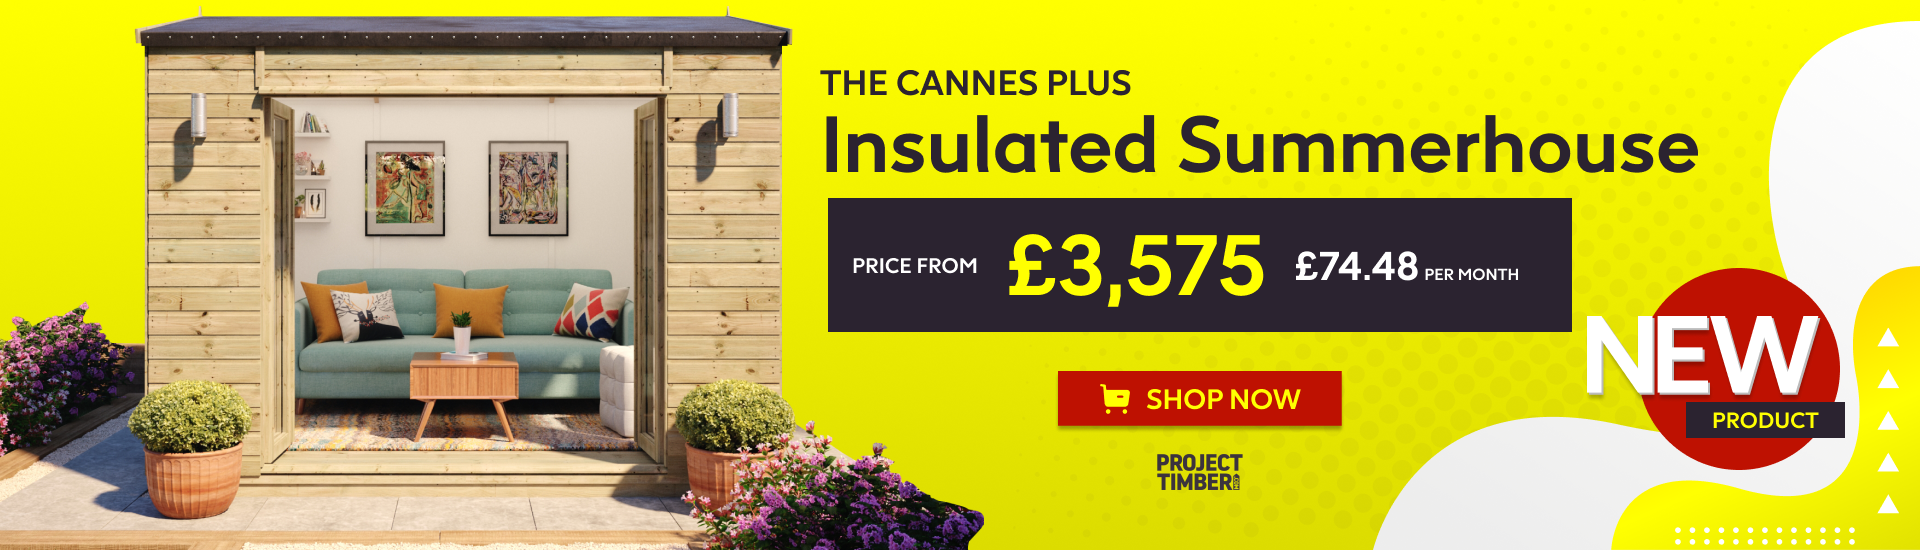 Cannes-Insulated-02